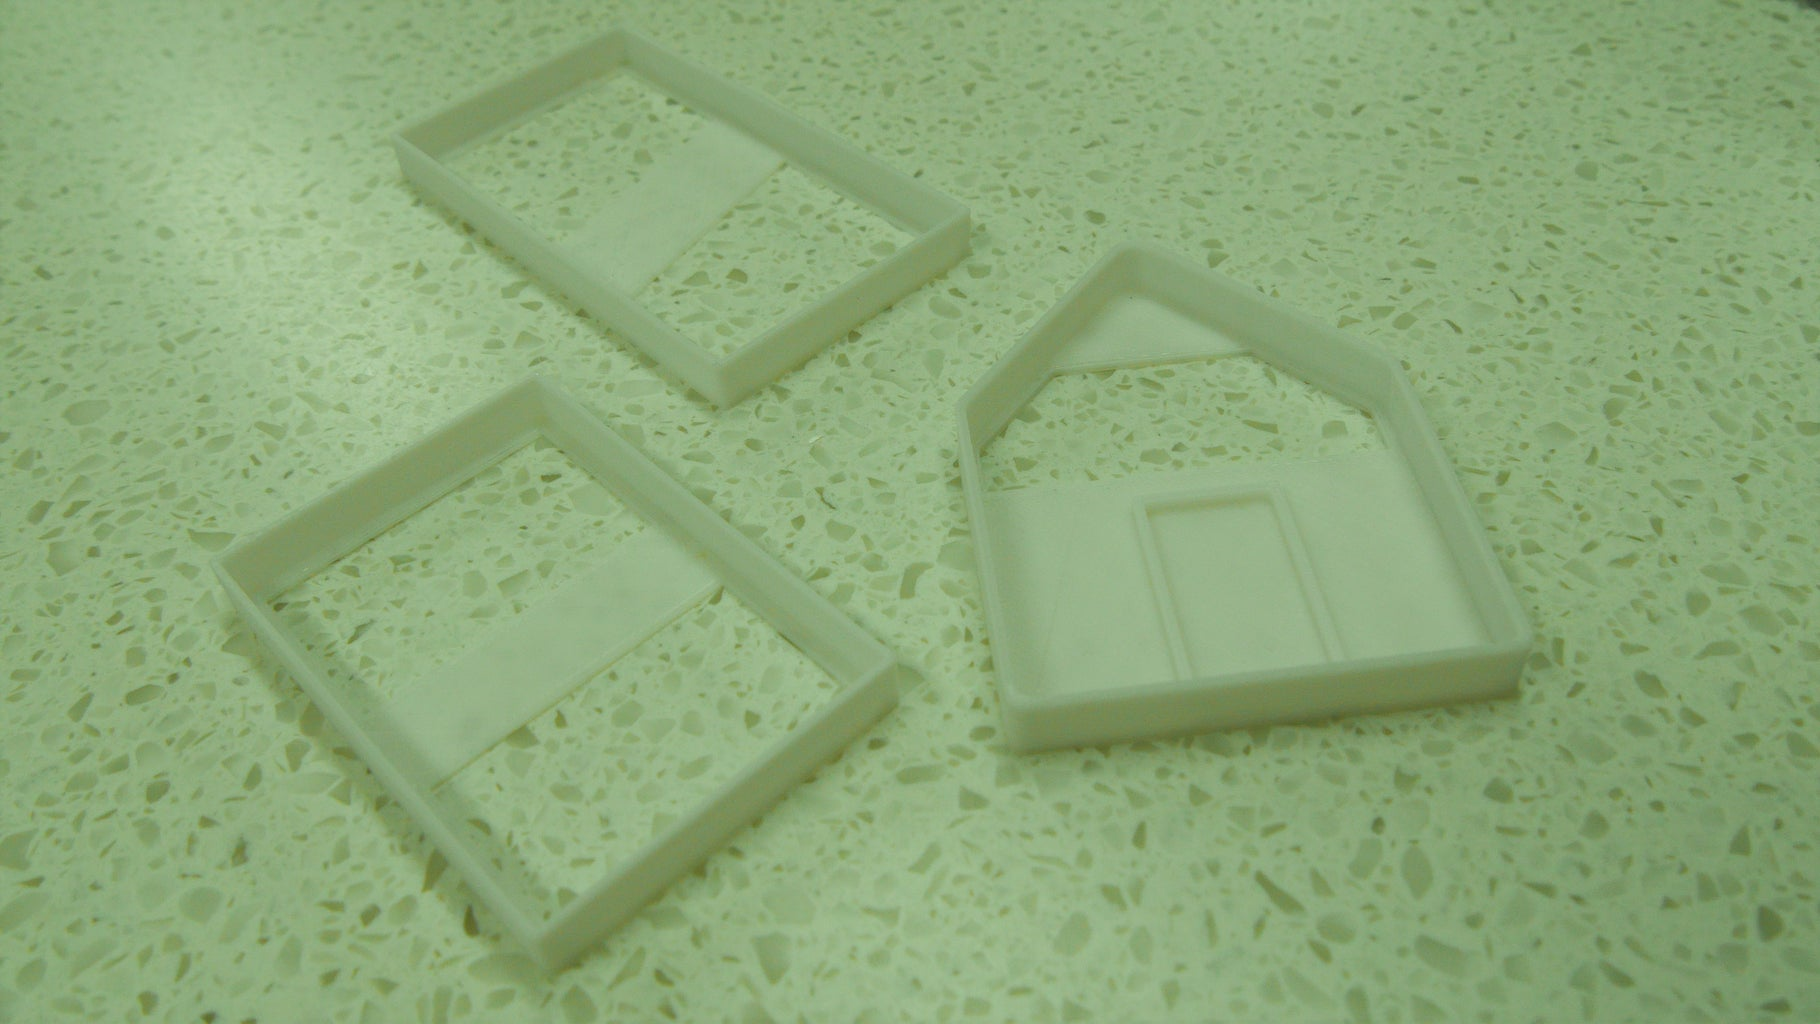 Step 2: 3D Printing the Biscuit Cutters